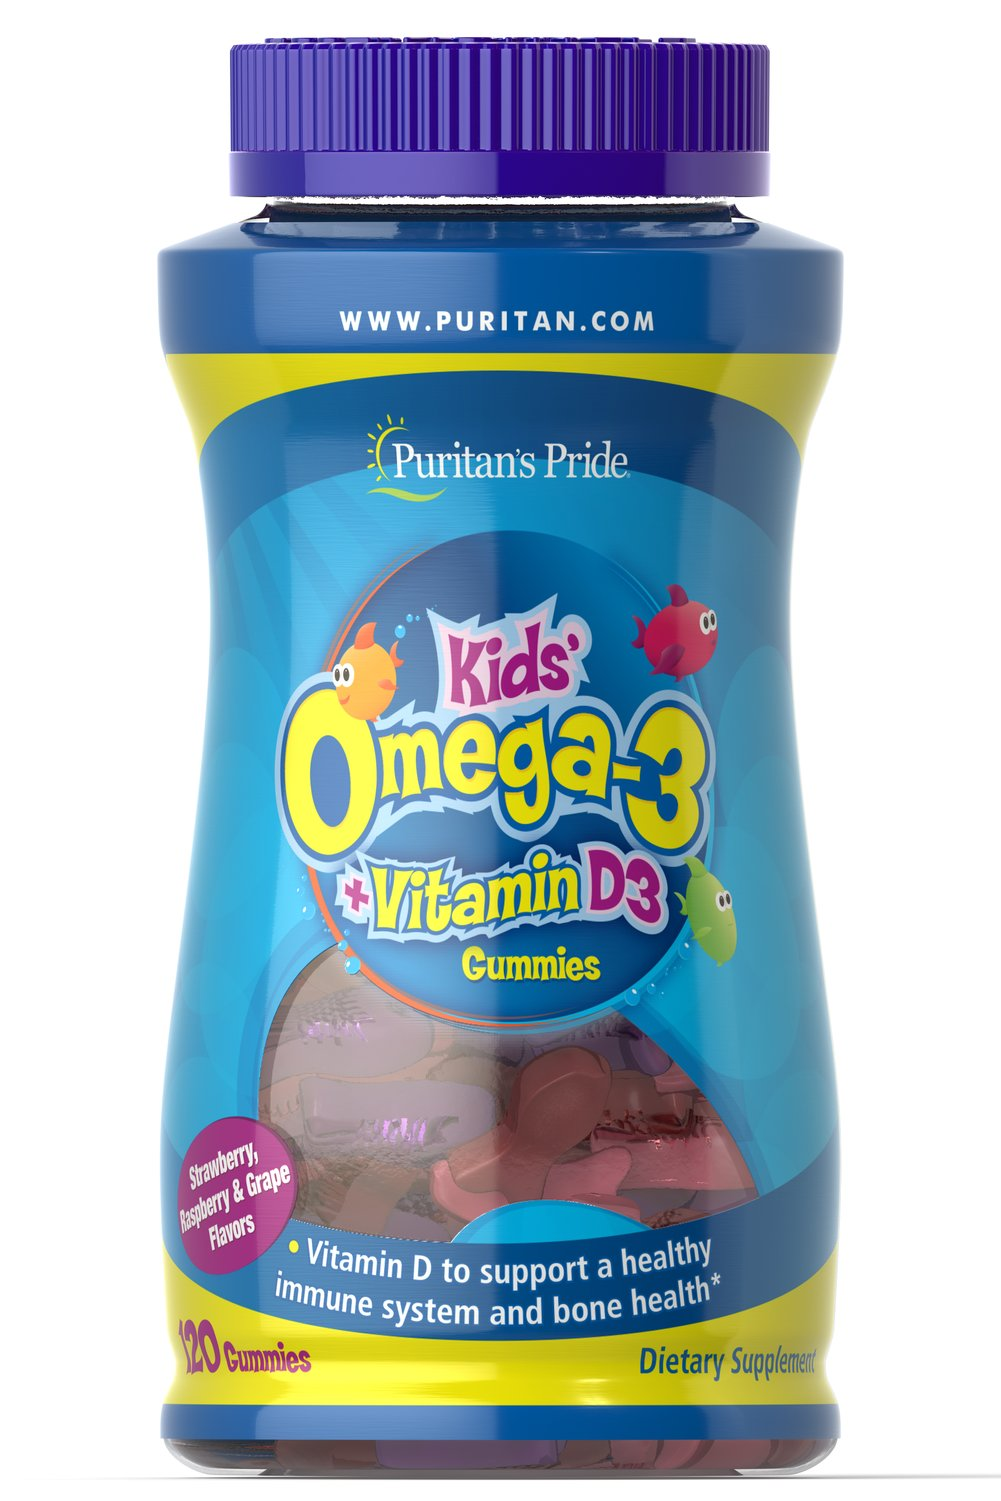 Children's Omega 3, DHA & D3 Gummies <p>Yummy gummies contribute to your child's healthy growth and development**</p> <p>Each gummy provides your child with essential Omega-3 fatty acids</p> <p>No artificial colors, flavors or sweeteners</p>  <p>Preservative and gluten-free</p> <p>Delicious gummies come in strawberry banana, orange peach and green apple flavors</p> 120 Gummies  $29.99